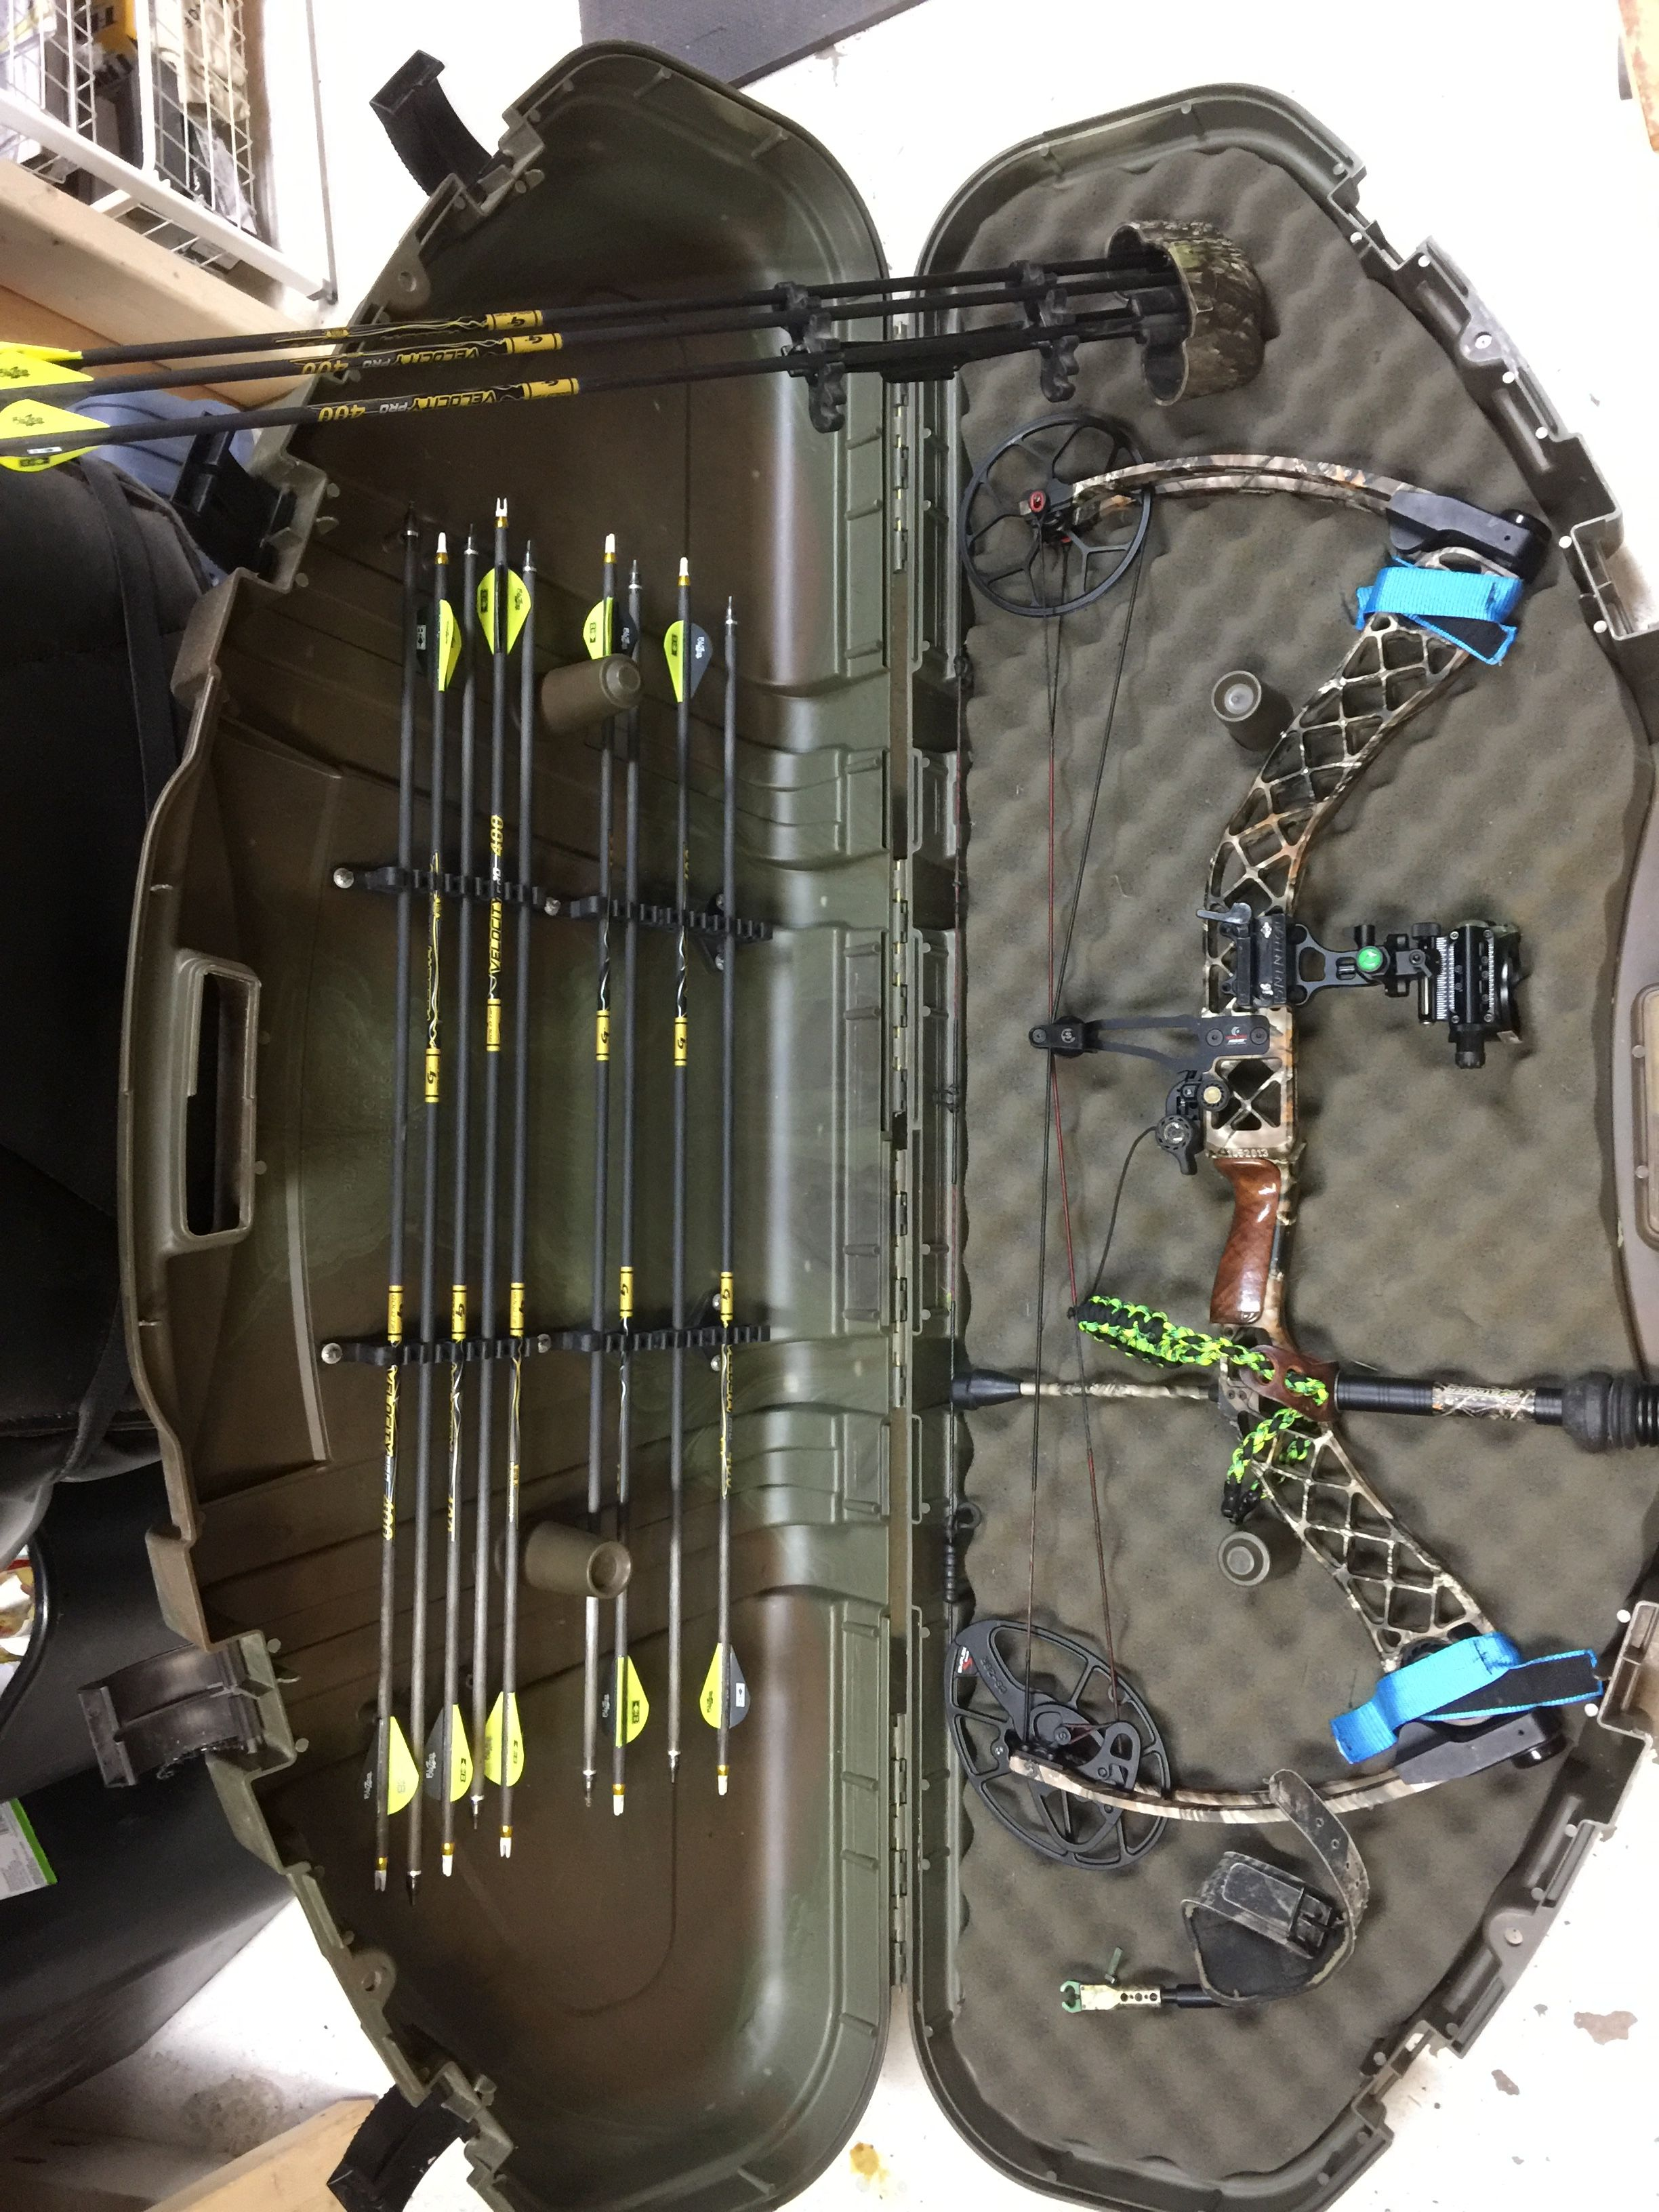 Mathews creed lost camo edition with iq 5 pin bow sight